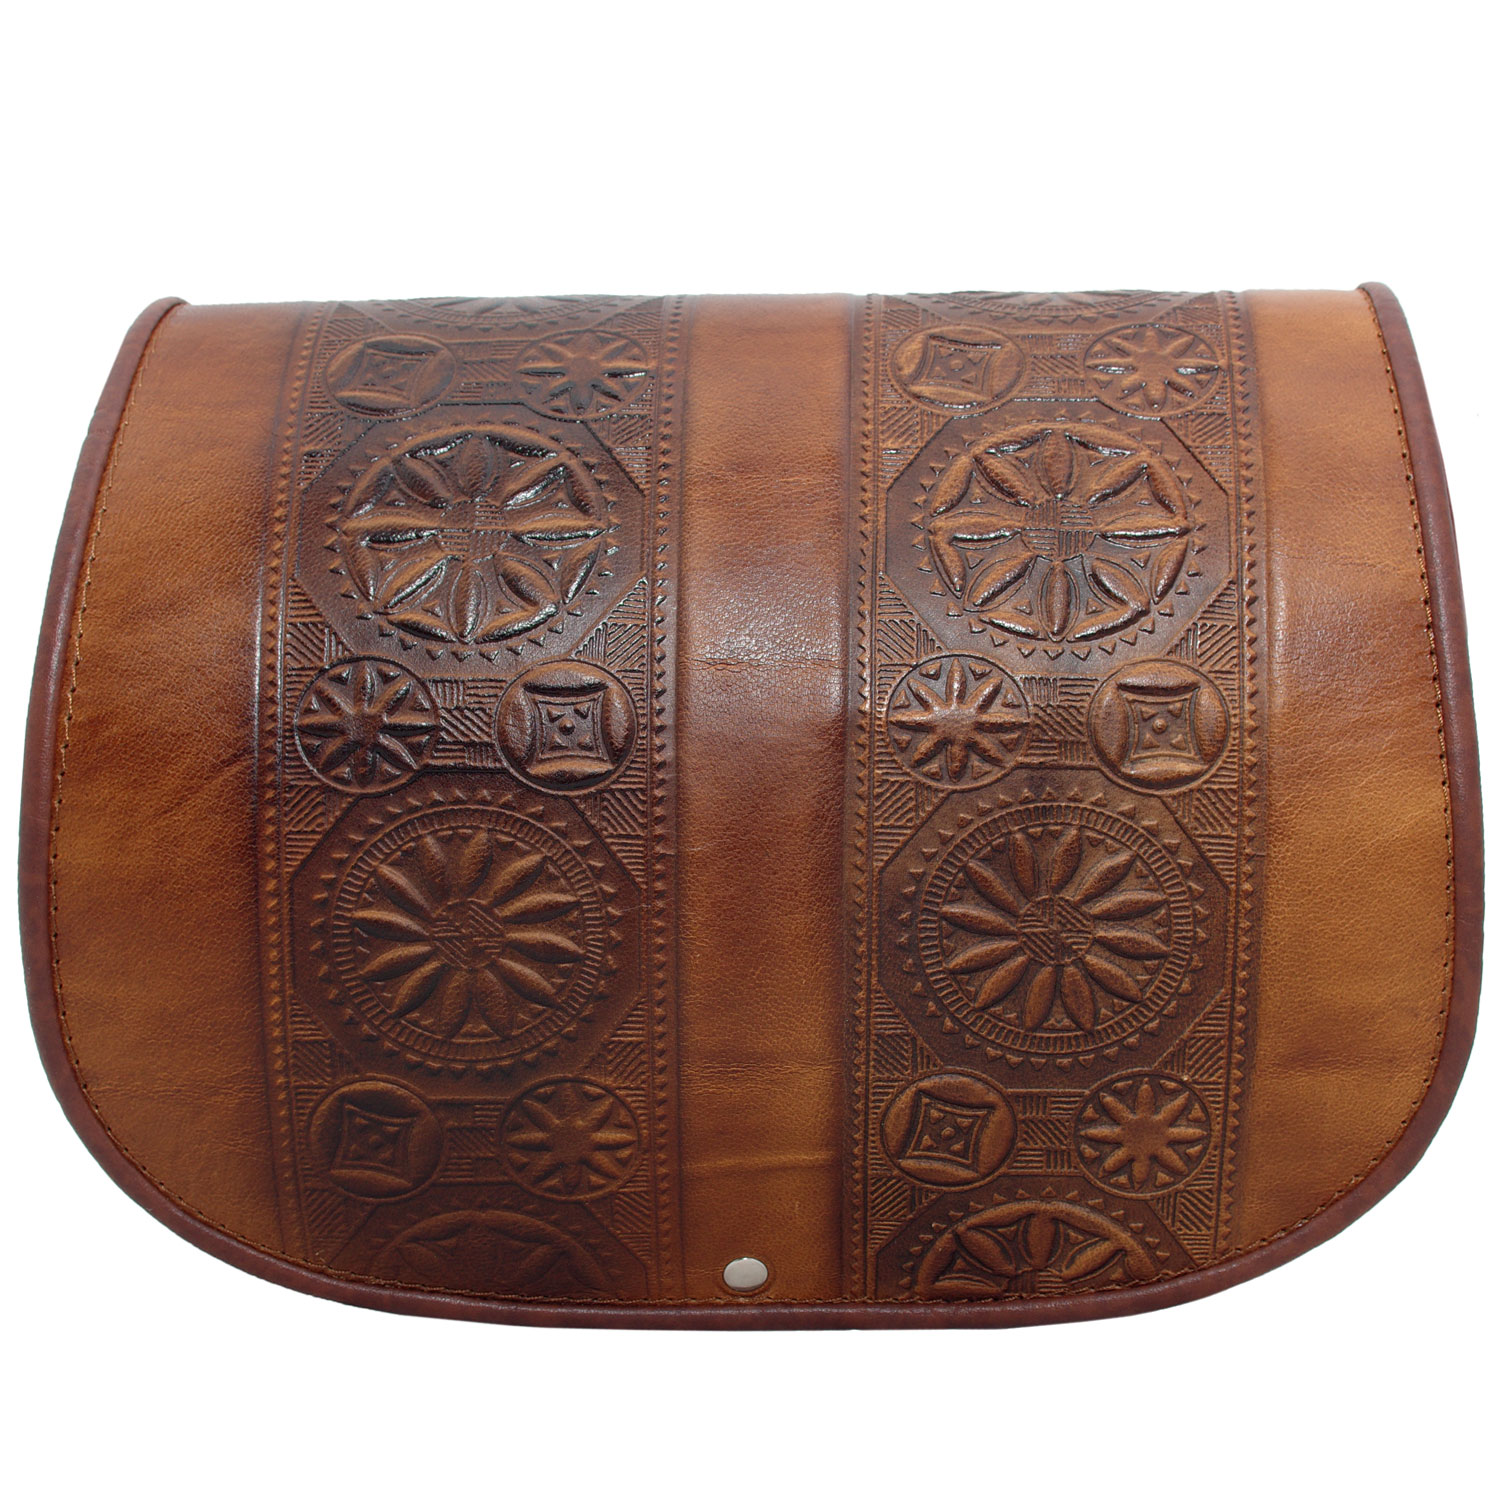 Large women full grain leather bag with traditional popular motifs moulded embossed symbols